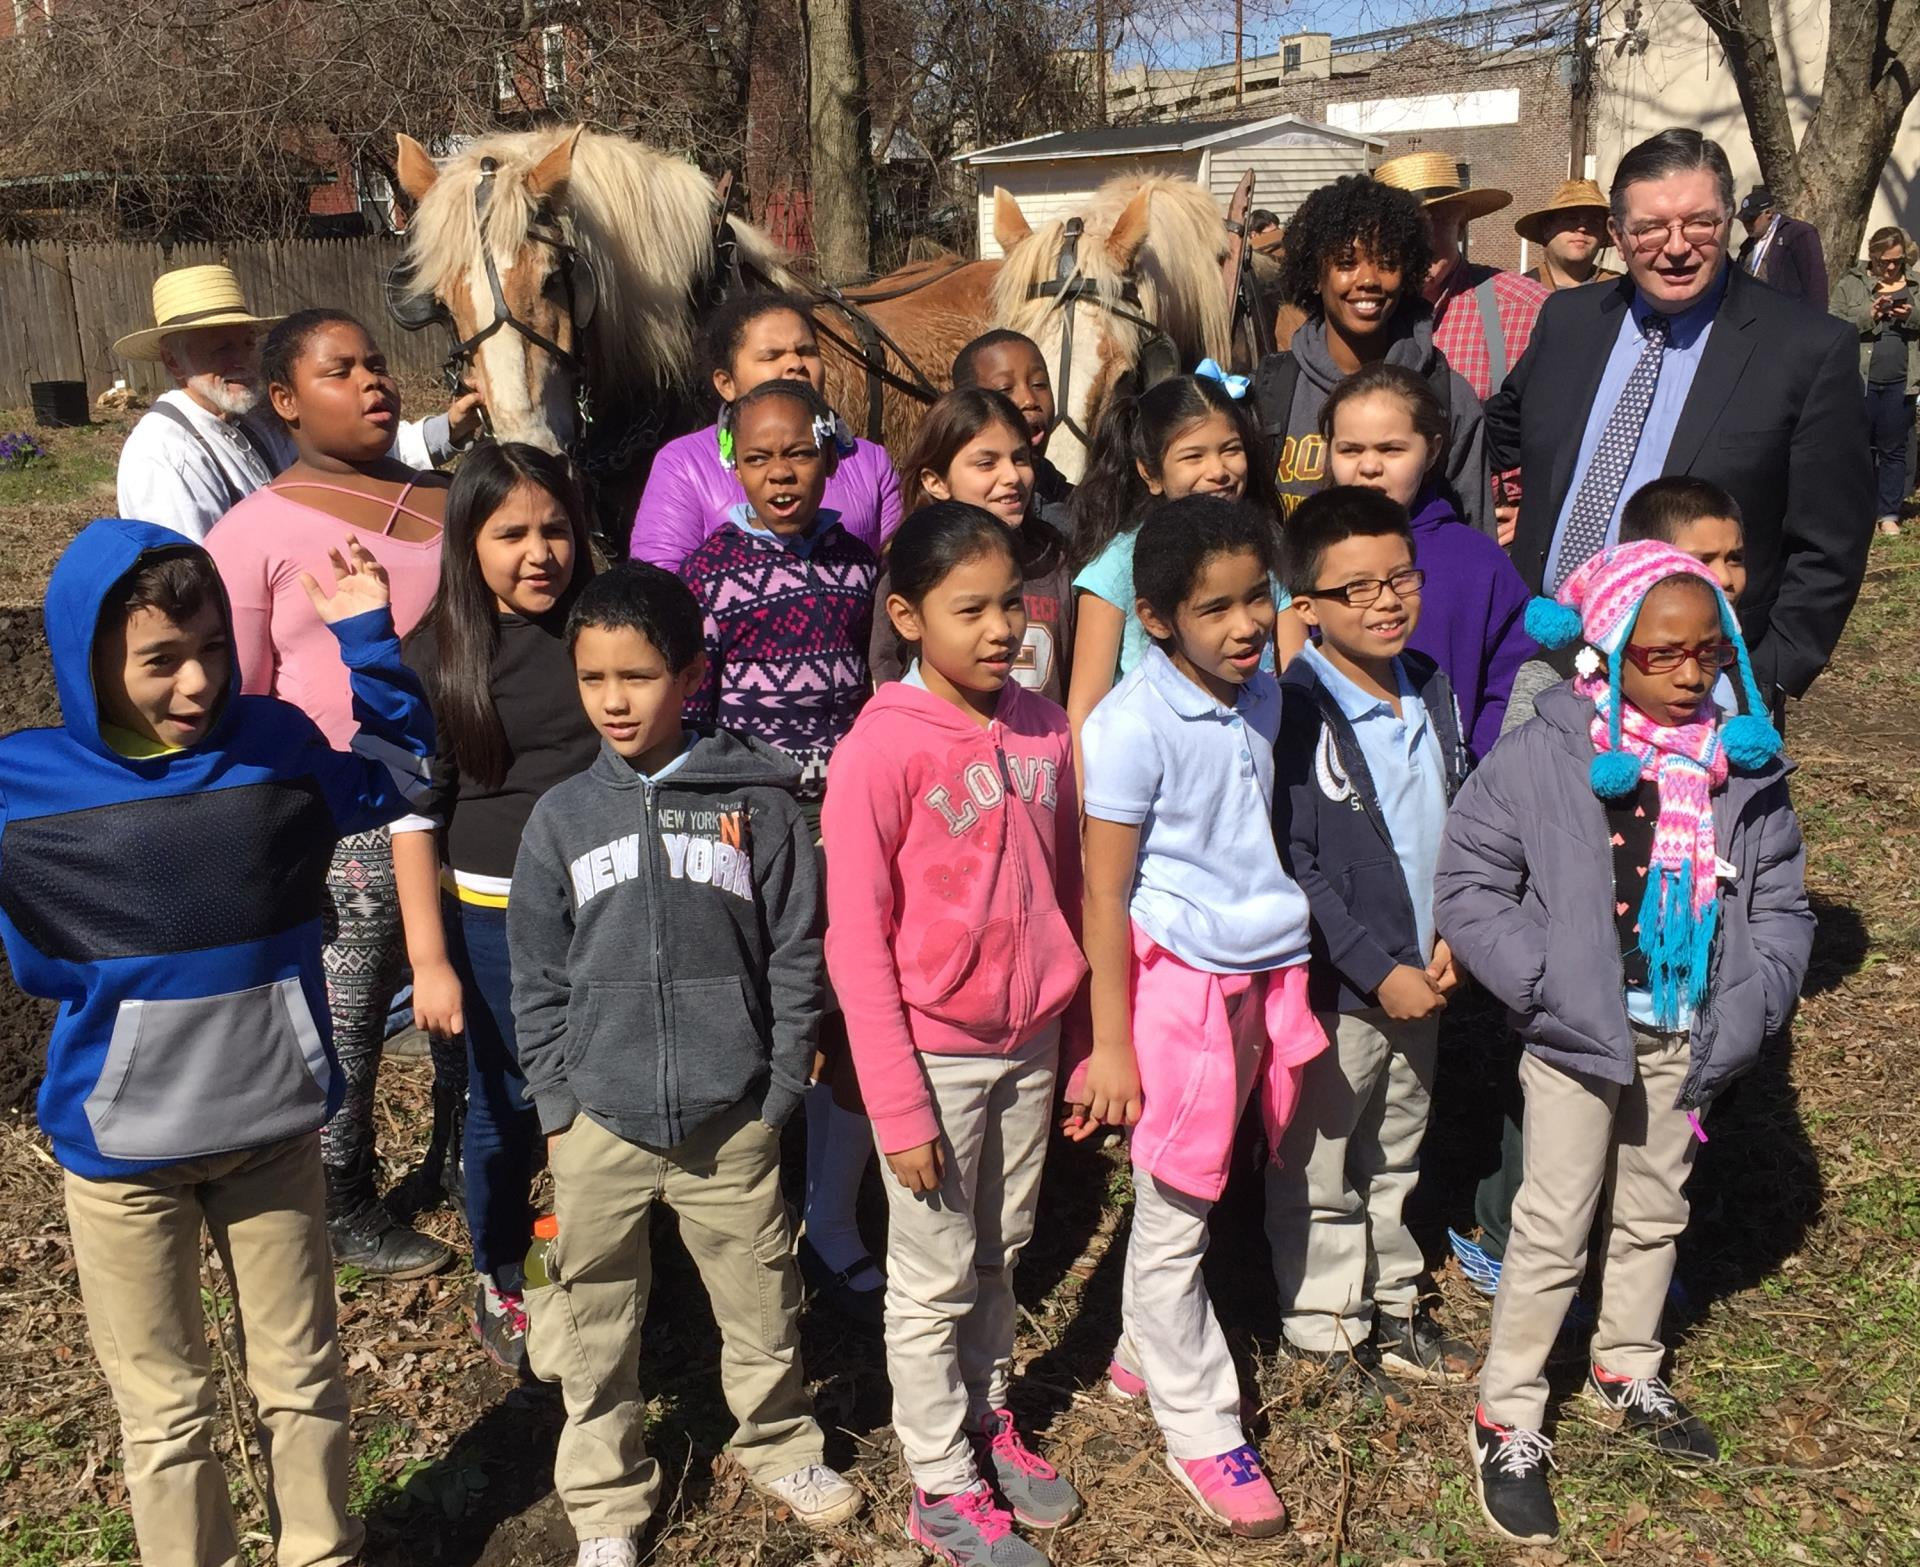 Mr. Hughes with students at Isles Community Gardens Plowing Day